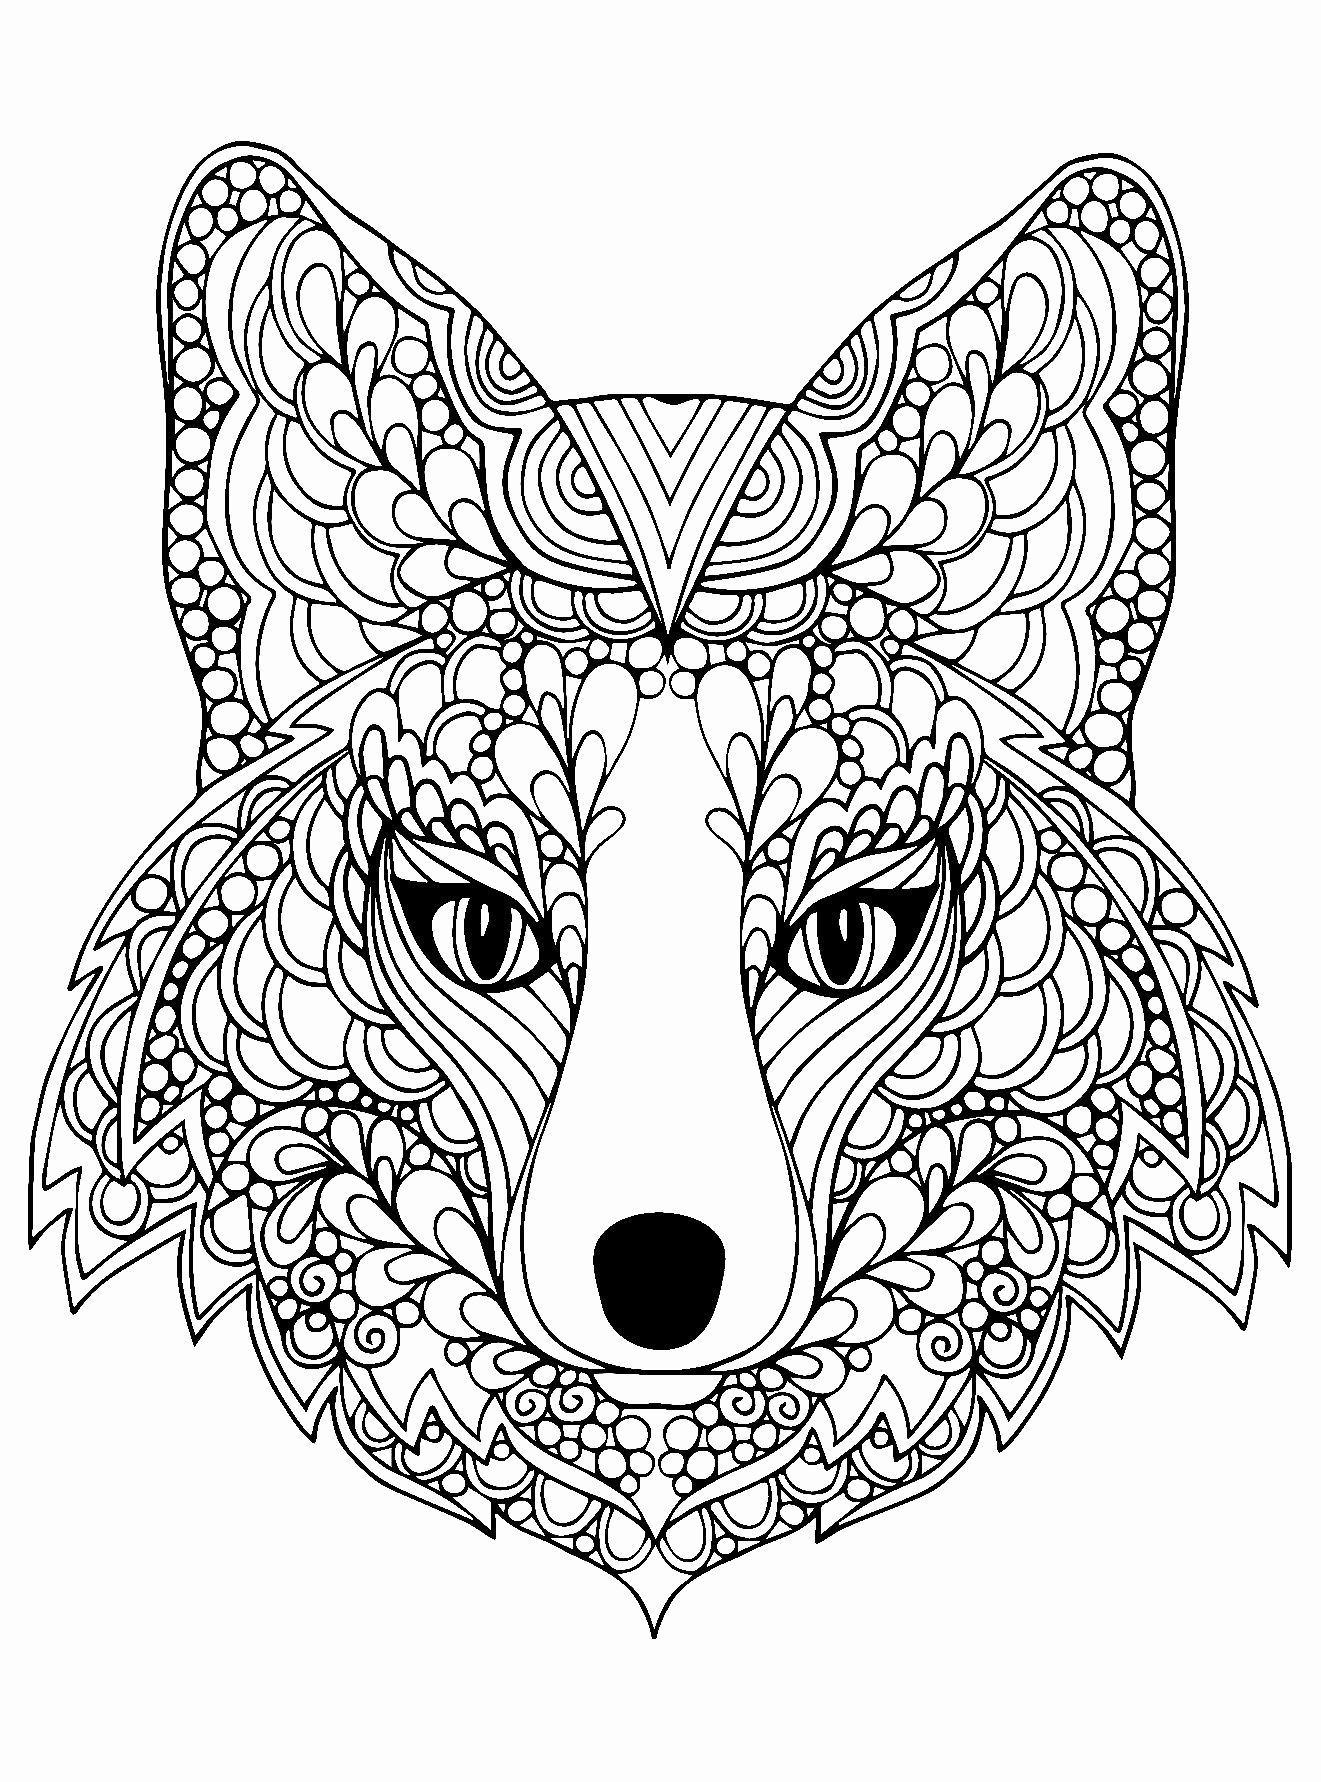 Animal Coloring Pages A To Z Warna Wallpaper Iphone Wallpaper Hd